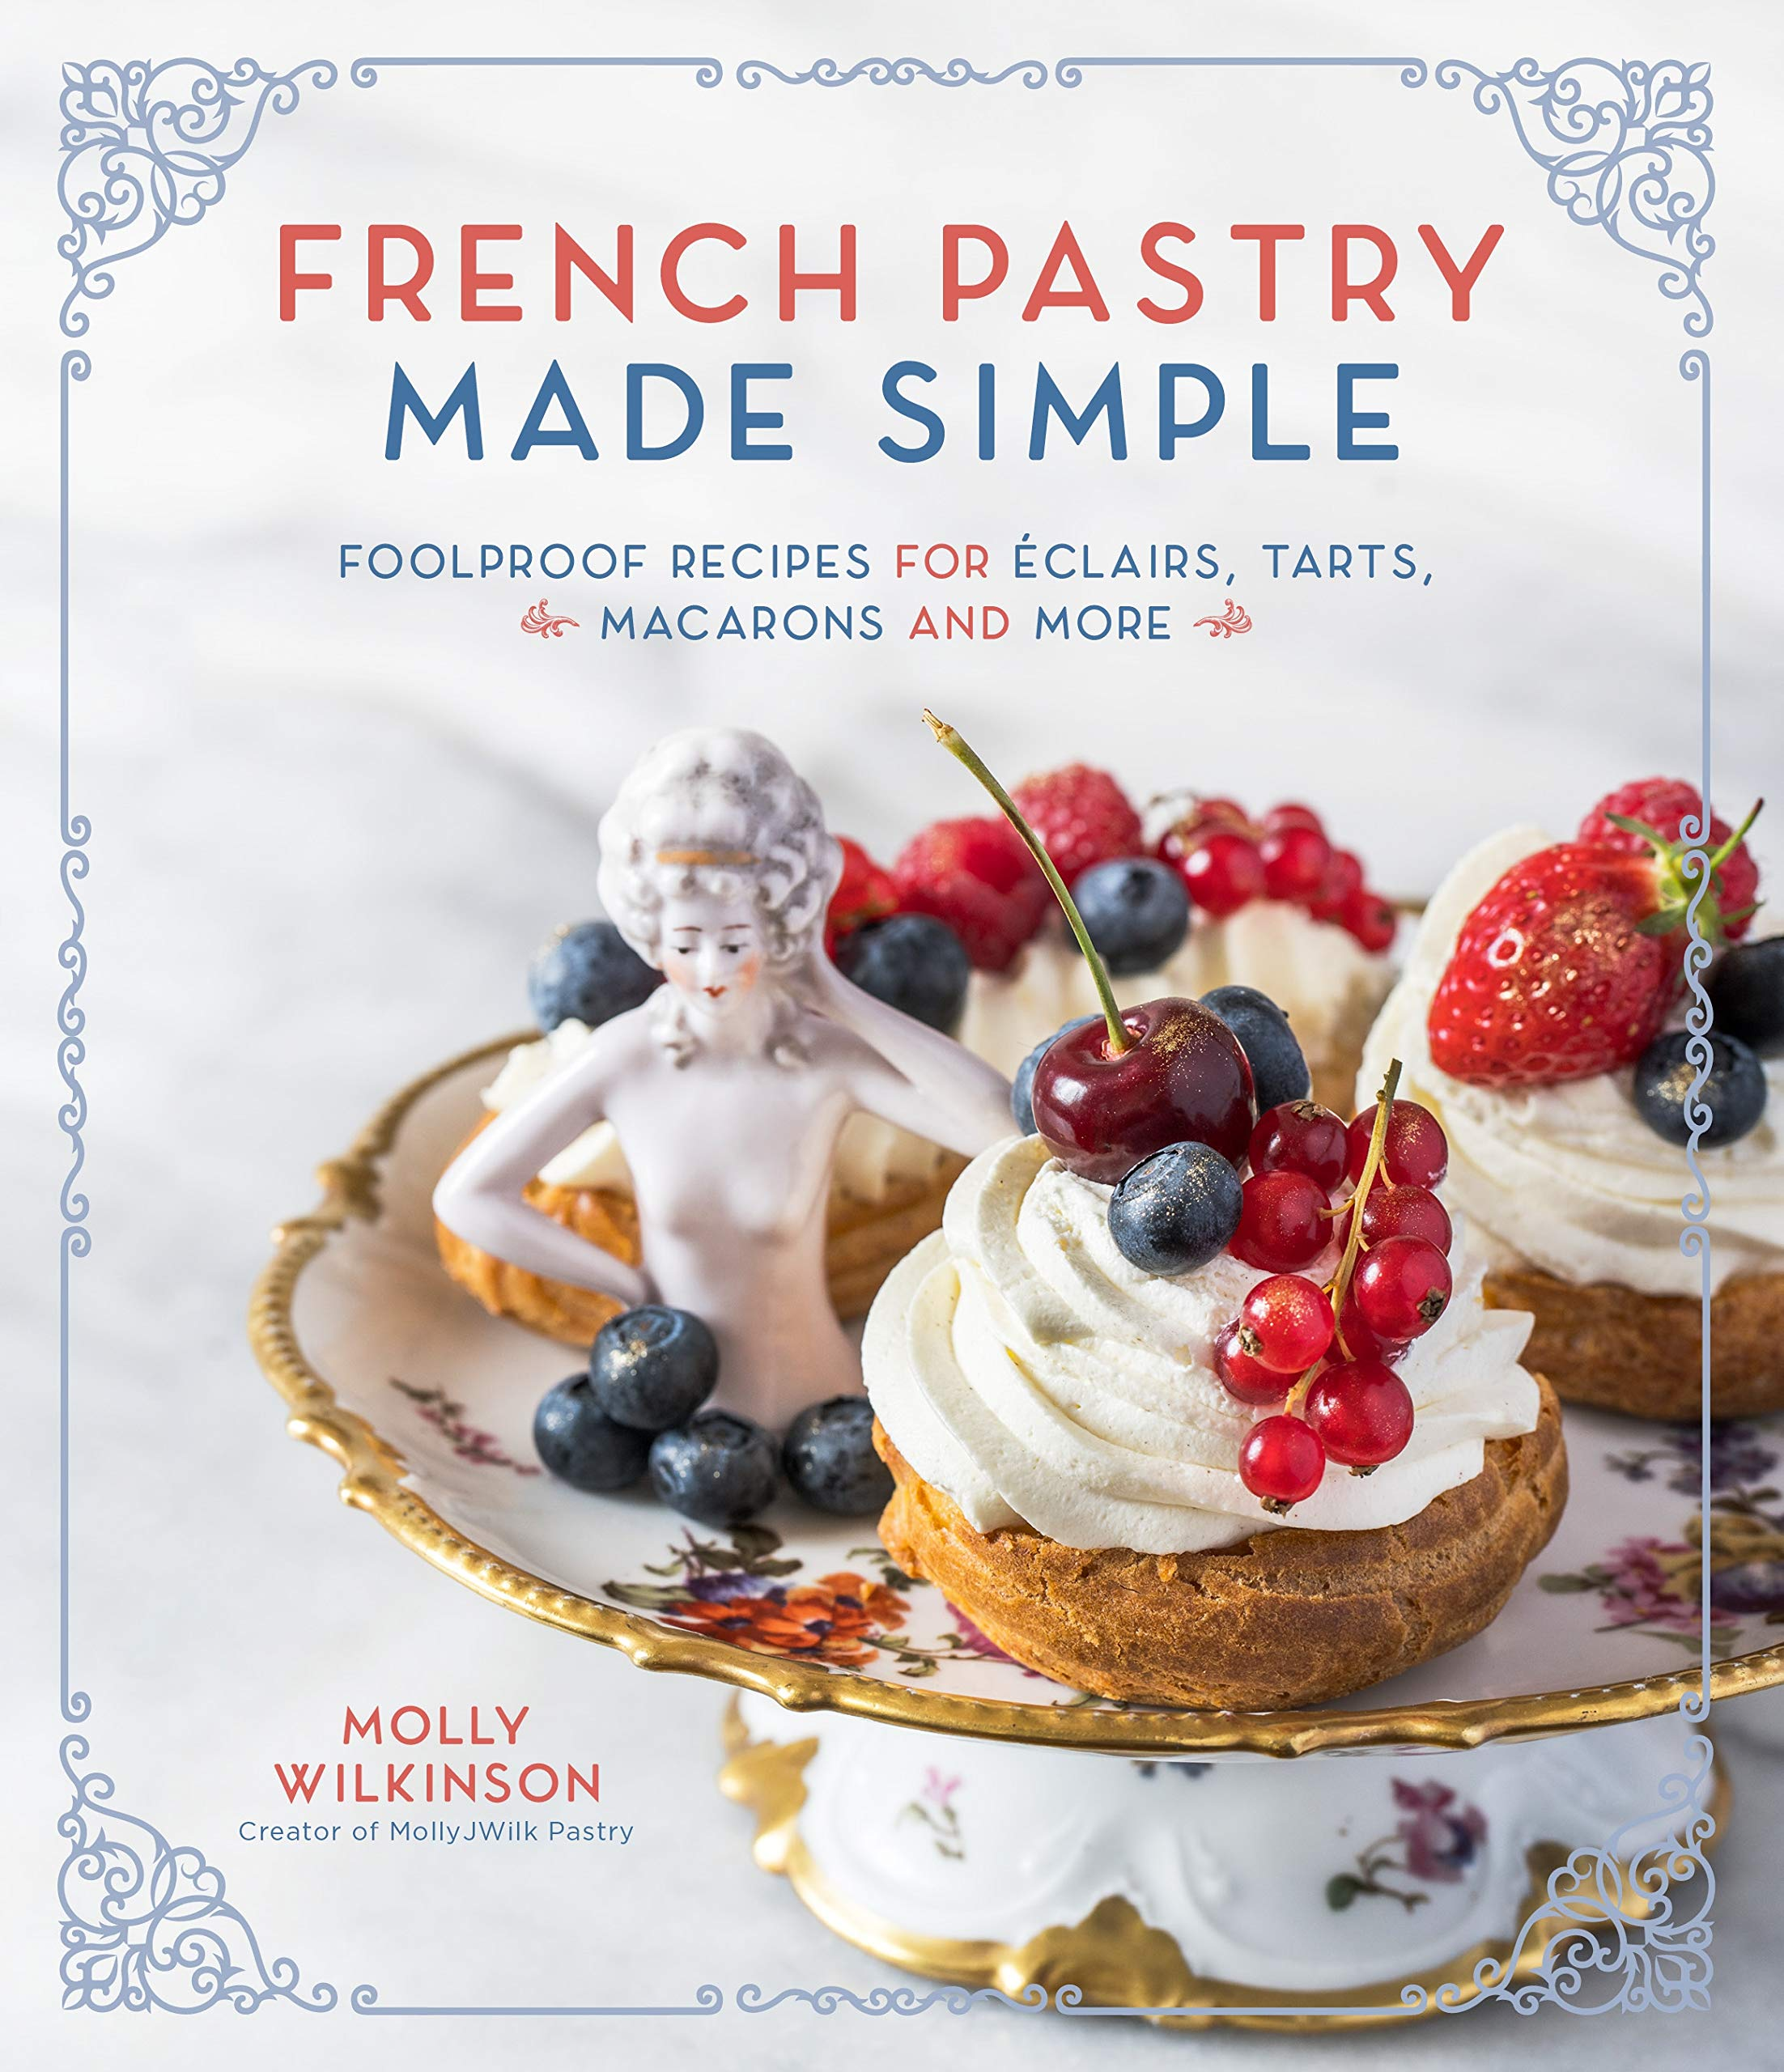 french pastry made simple cookbook